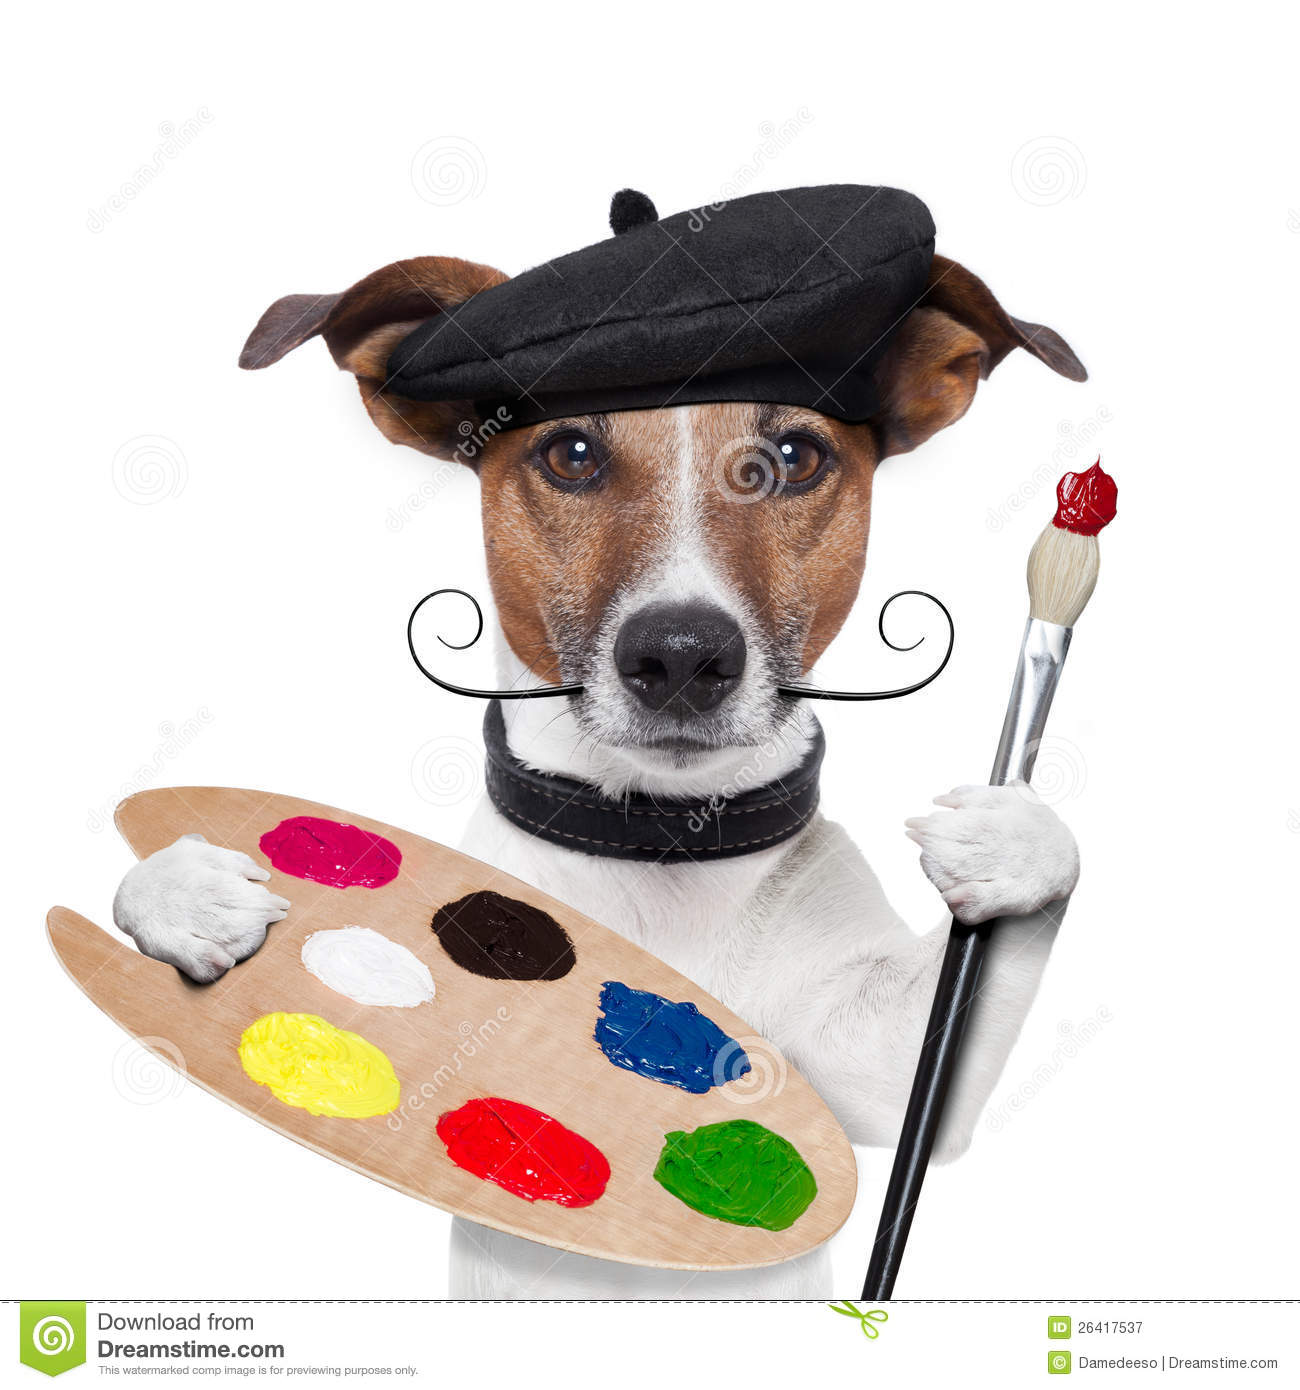 Painter Artist Dog Royalty Free Stock Photography - Image: 26417537